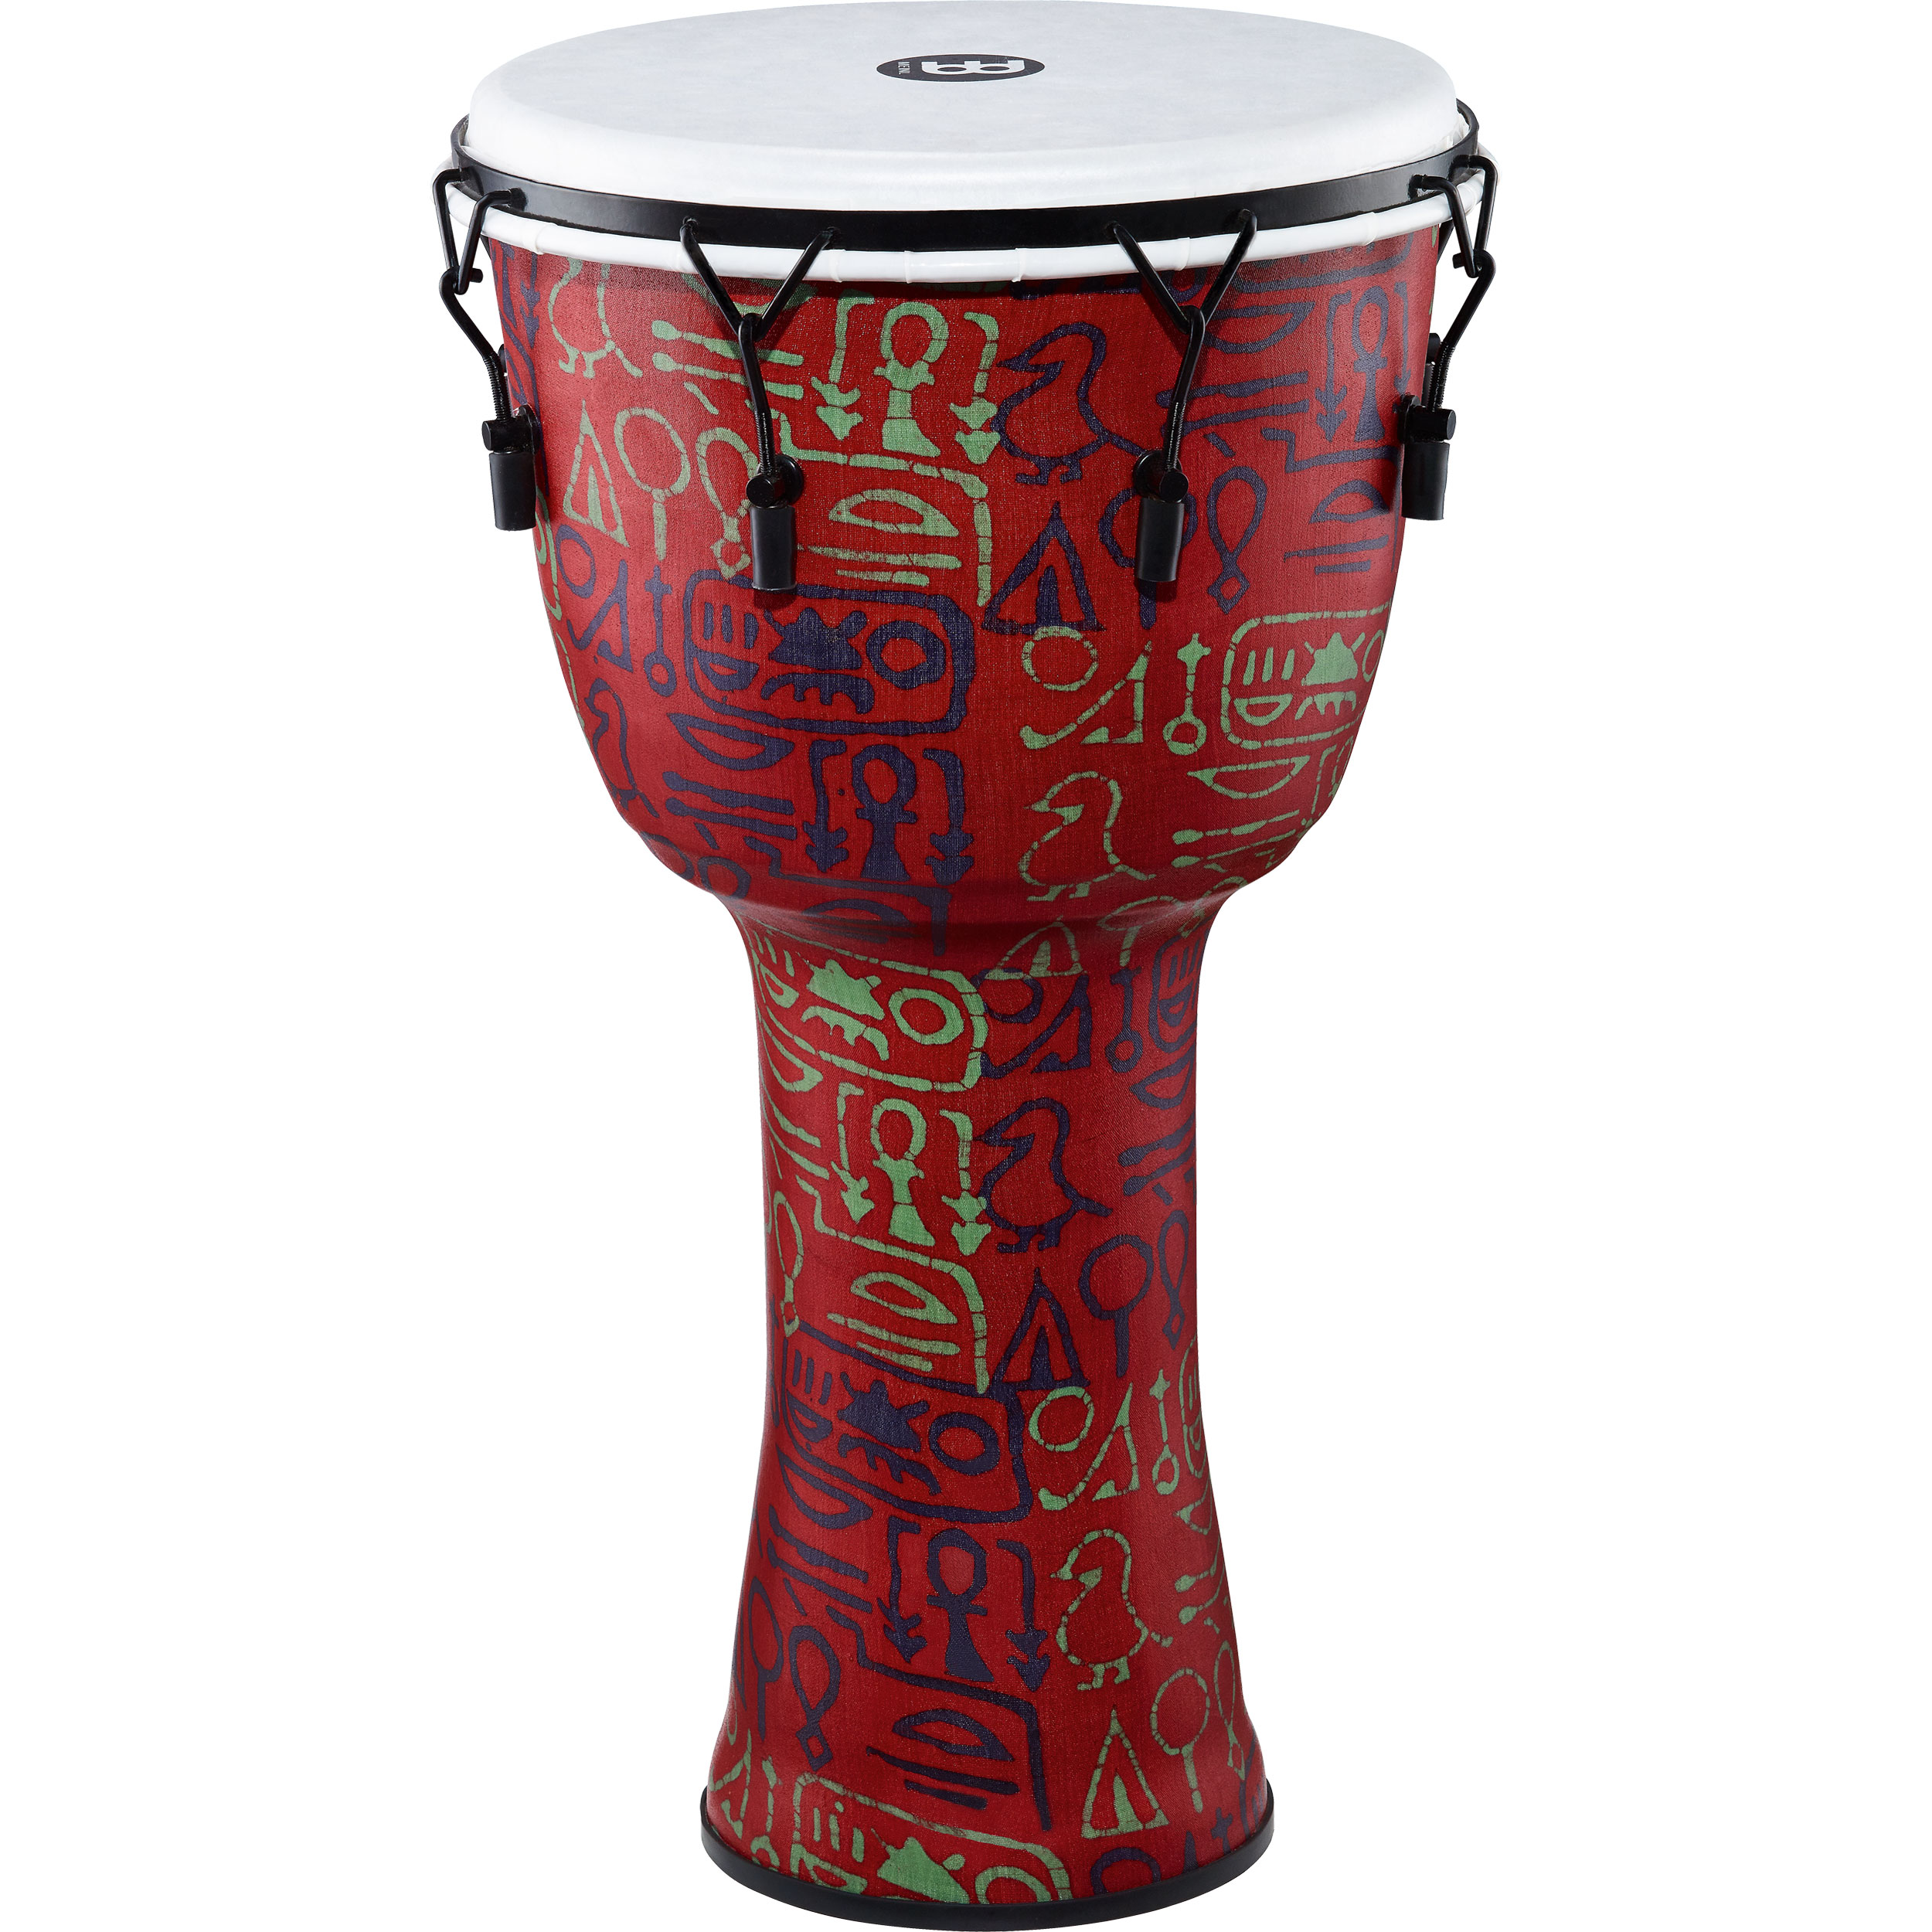 "Meinl 14"" Mechanically-Tuned Travel Djembe in Pharaoh"